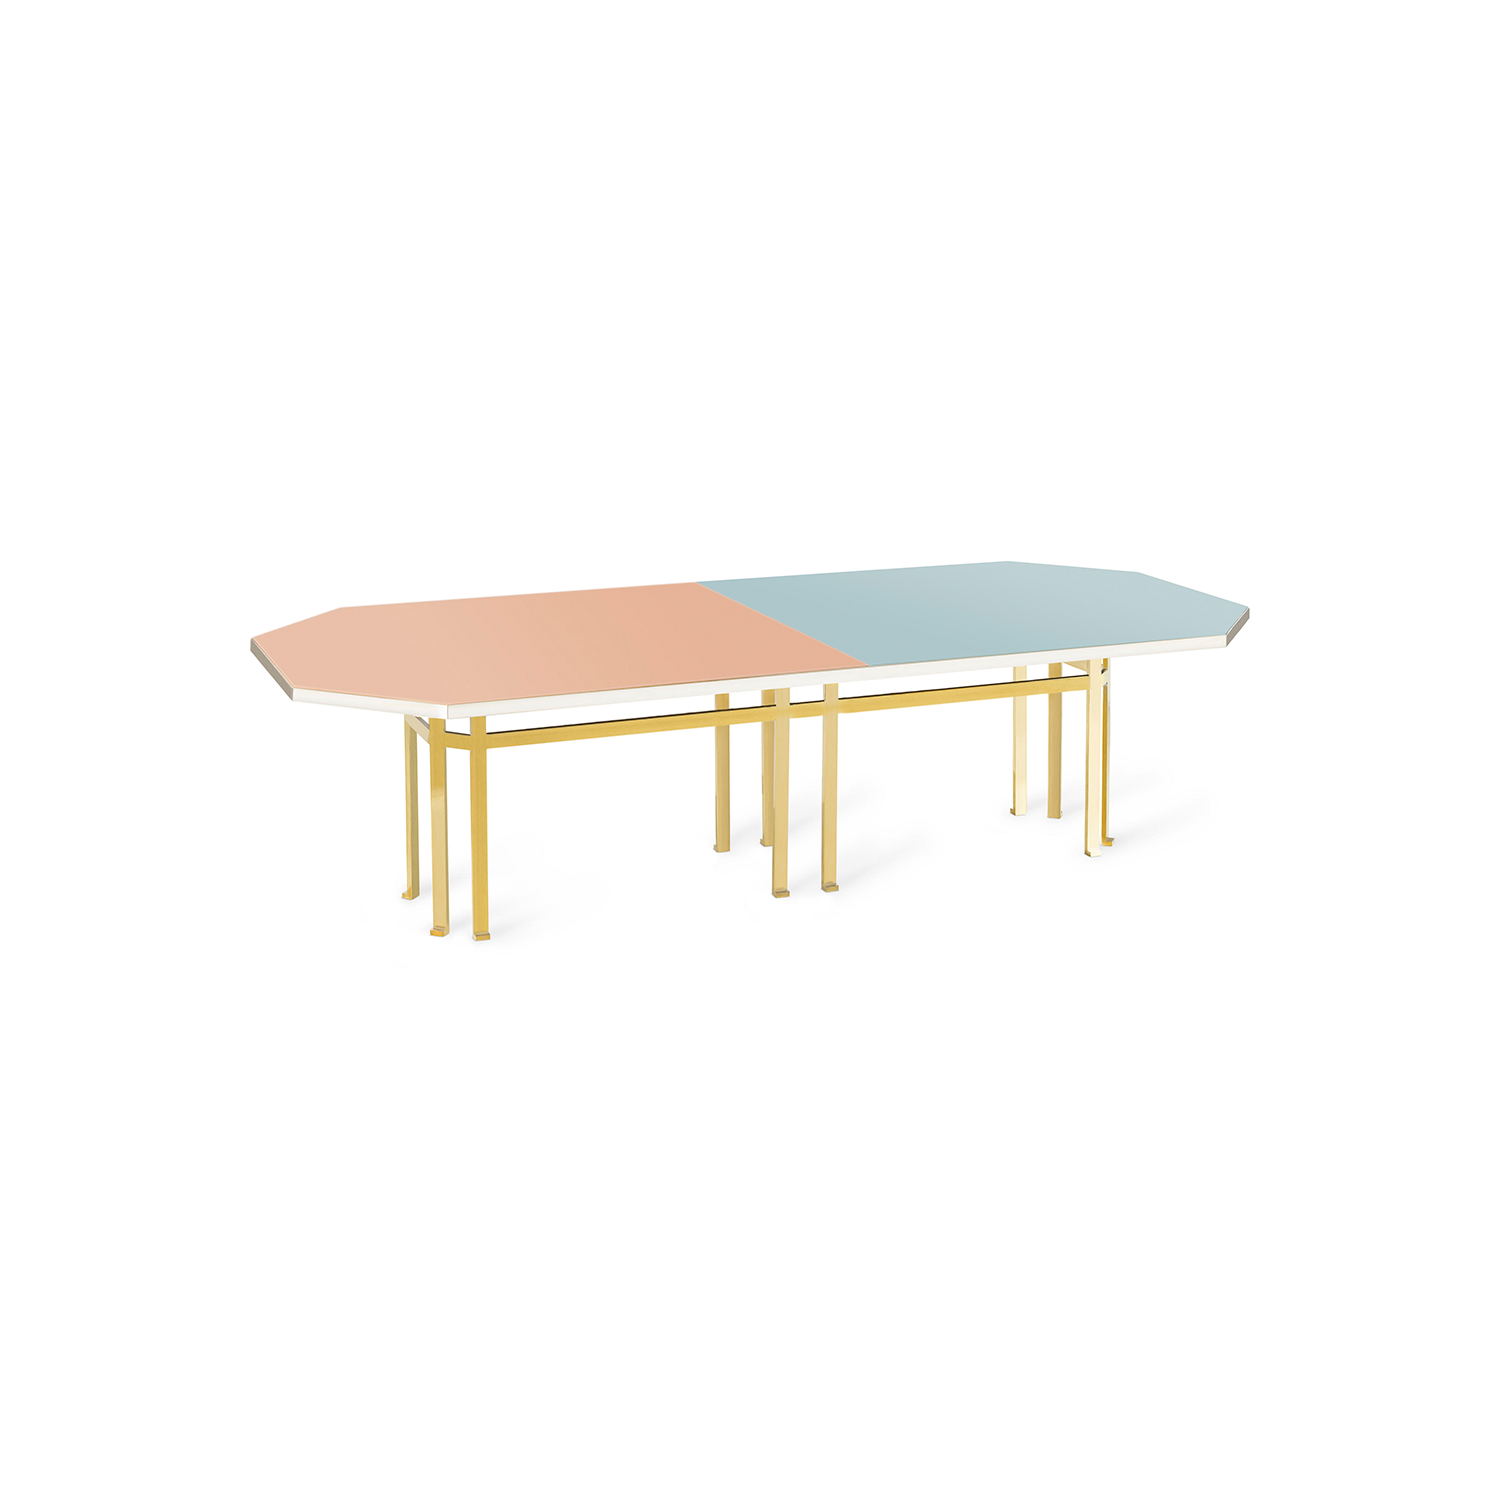 Holo 280 Table - Designed by Filippo Feroldi for Purho and Colleoni Arte, Holo 280 is a table with generous dimensions characterized by an octagonal brass structure surmounted by a sheet of glass back-coloured in two different shades which in turn rests on a base in black lacquered wood. The volumes, the technical details, the study of colour and the craftsmanship with which it is made make Holo 280 a precious, unique complement, masterfully balanced between the history of design and contemporaneity, capable of giving personality to the environments in which it is inserted.  Colours can be customised, please enquire for more details. | Matter of Stuff